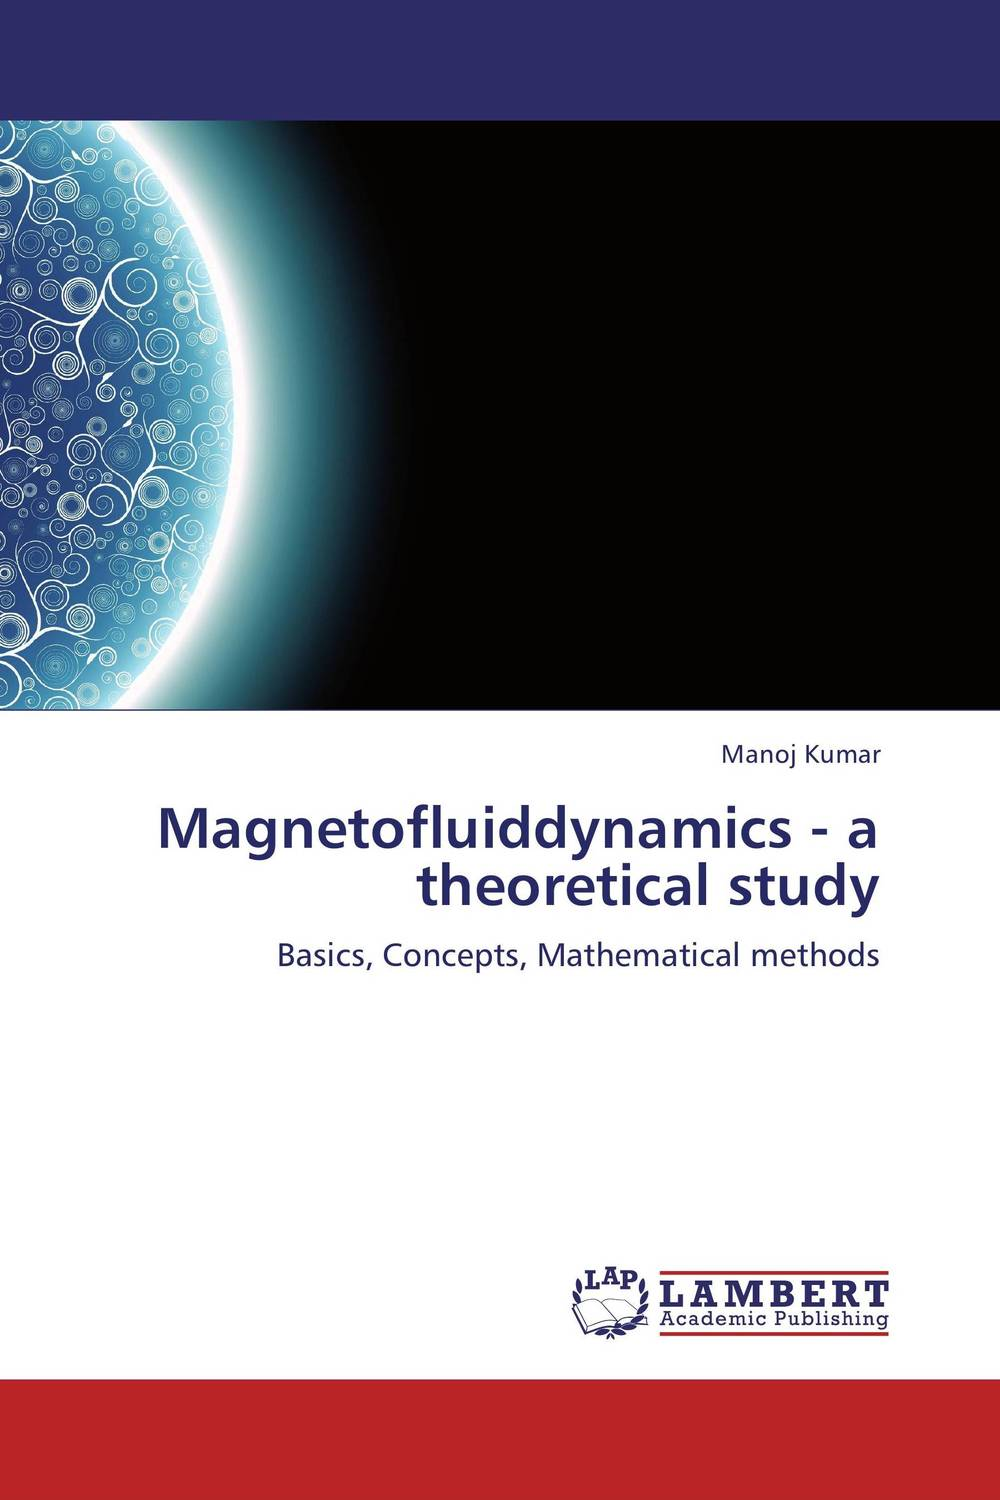 Magnetofluiddynamics - a theoretical study a study of the religio political thought of abdurrahman wahid